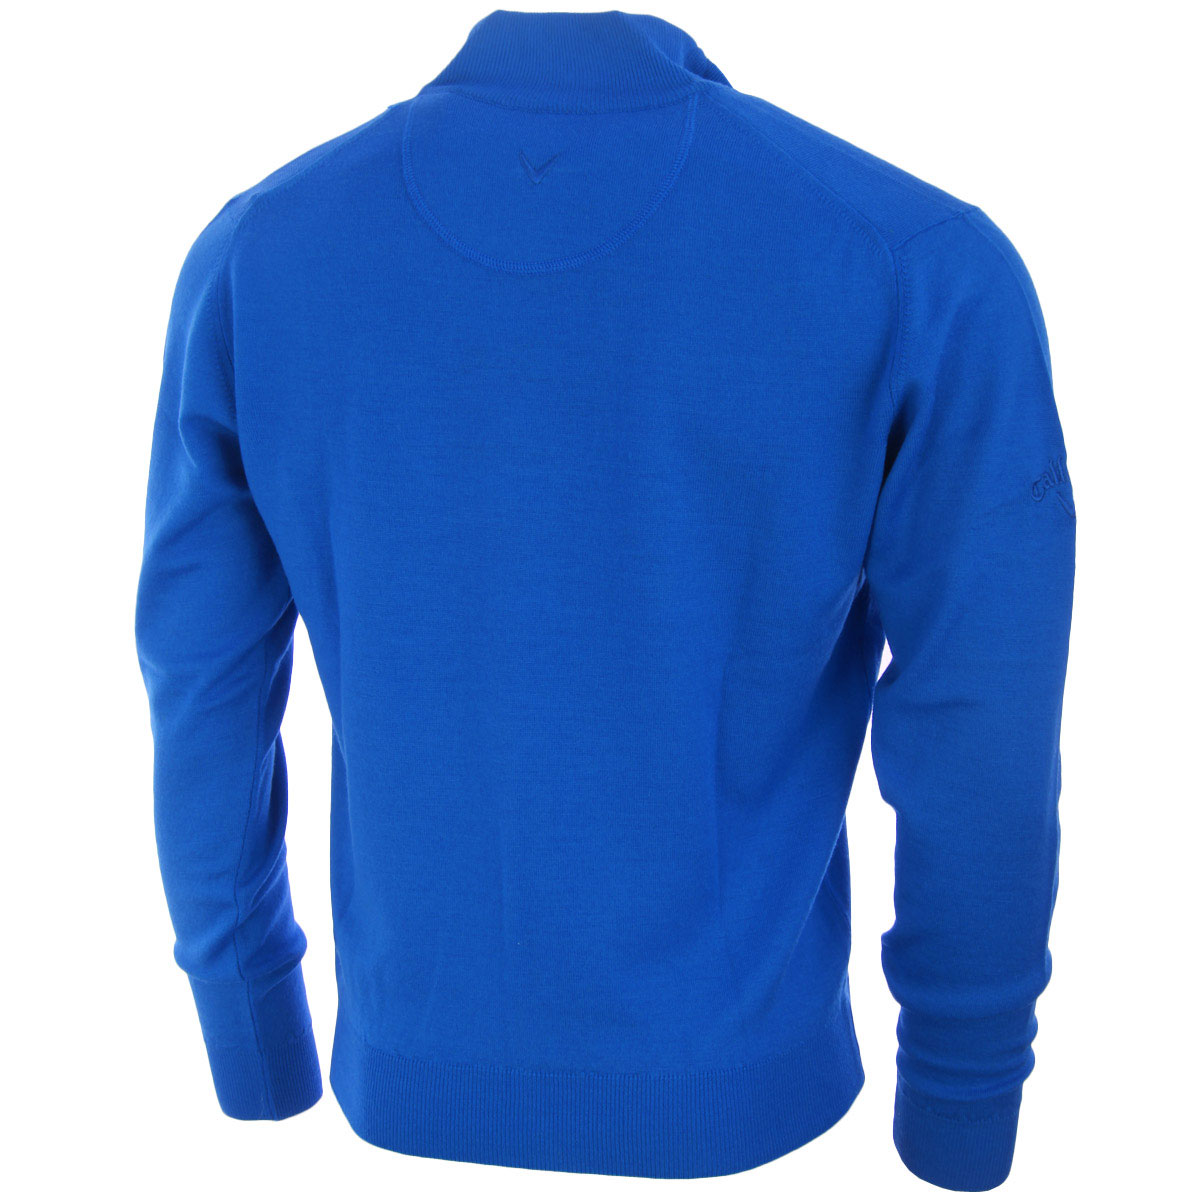 Callaway-Golf-Mens-Merino-1-4-Zip-Sweater-Wool-Pullover-Therm-Jumper-60-OFF-RRP thumbnail 18